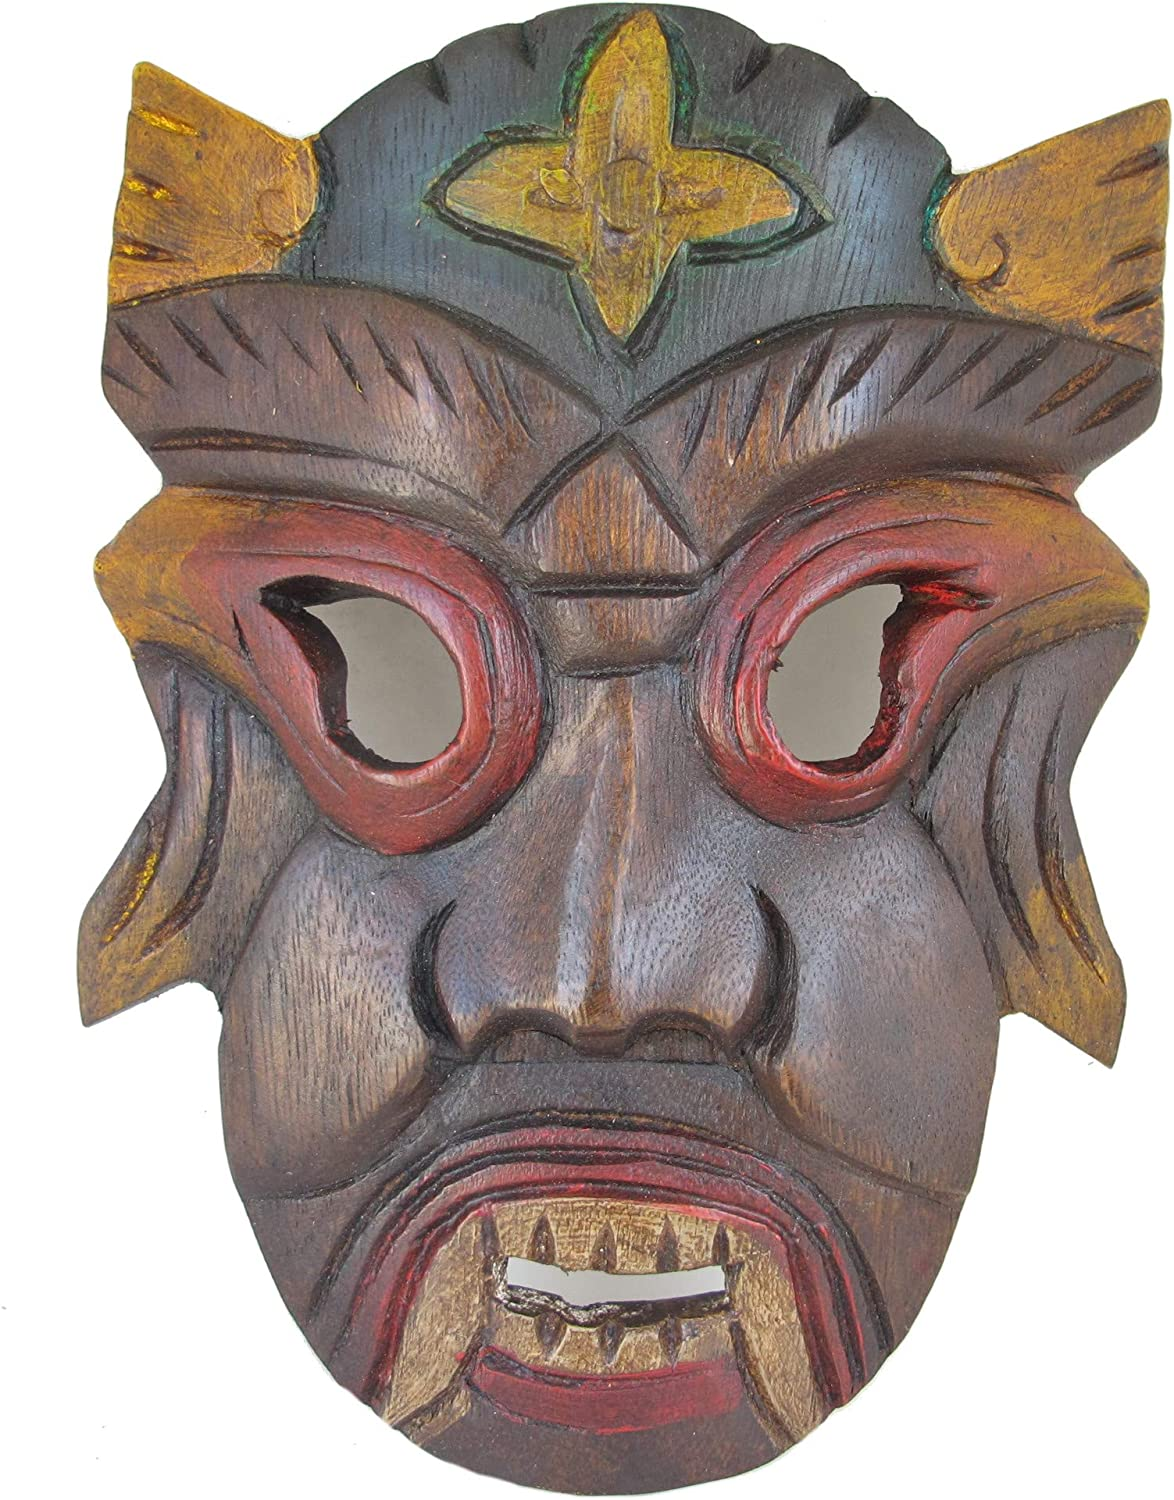 Wood Tribal Mask Sculpture - African Style Tiki Mask Wall Art Decor - Hand Carved Bar Man Cave Accent